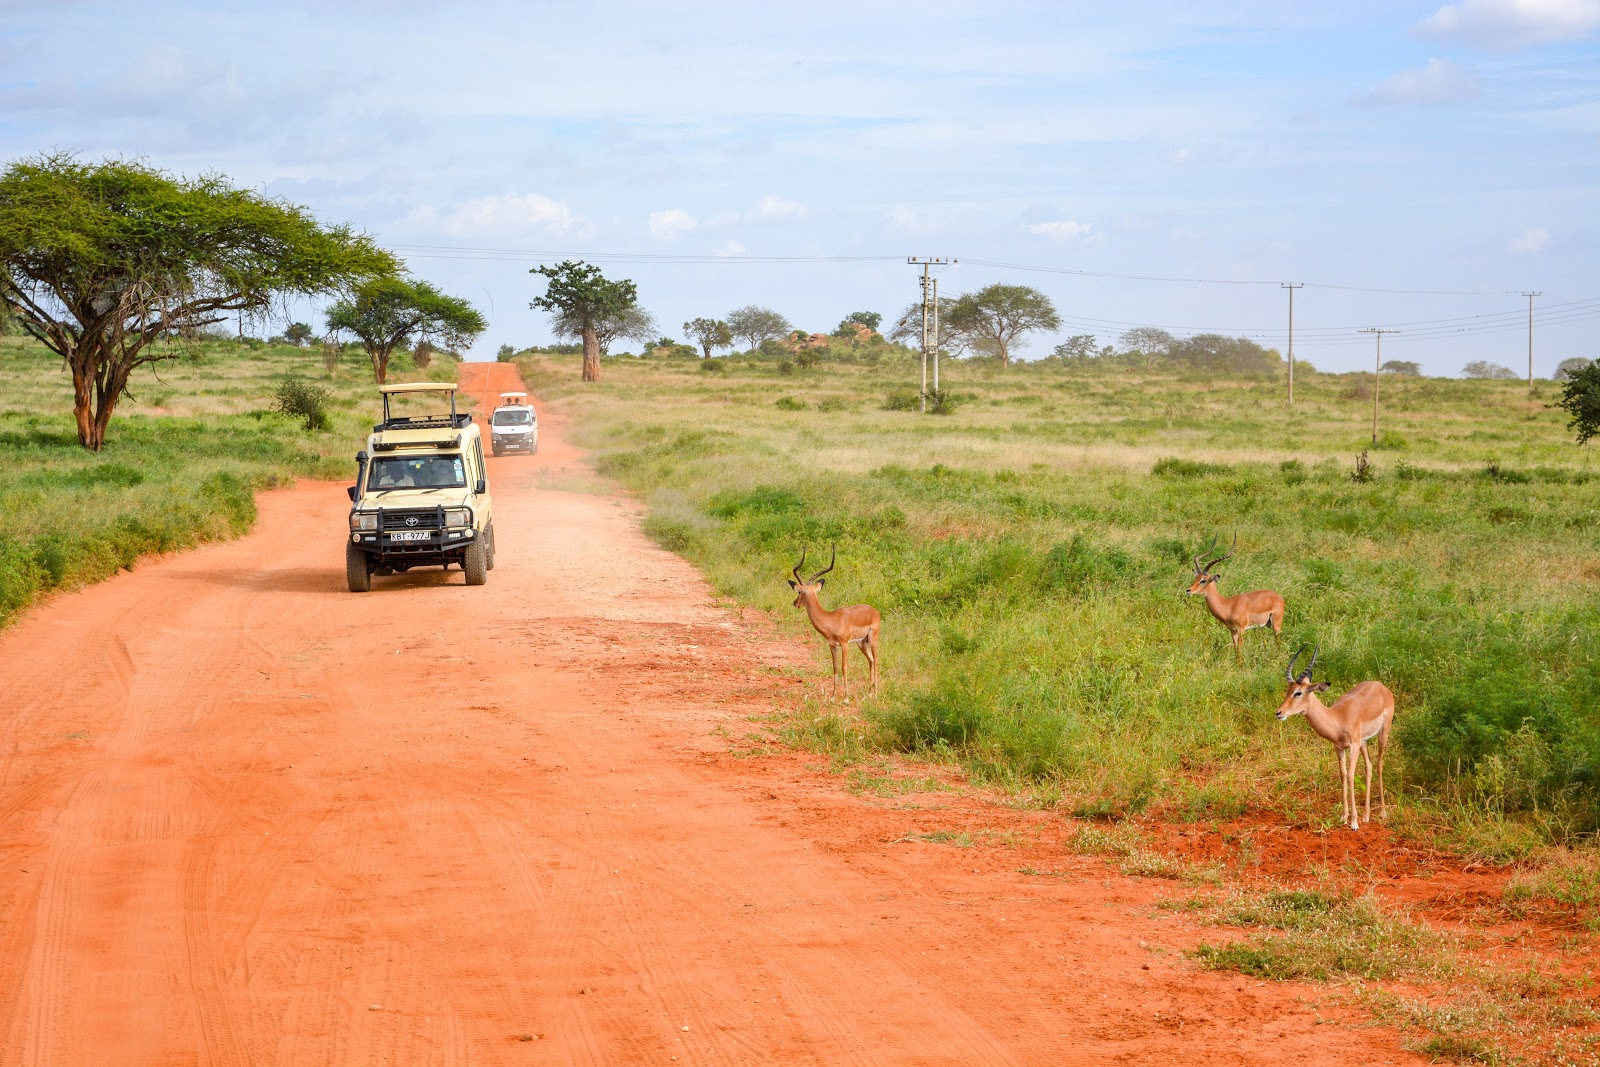 Red dirt road in African savannah with Jeep-like vehicles traveling down it and gazelle on the roadside